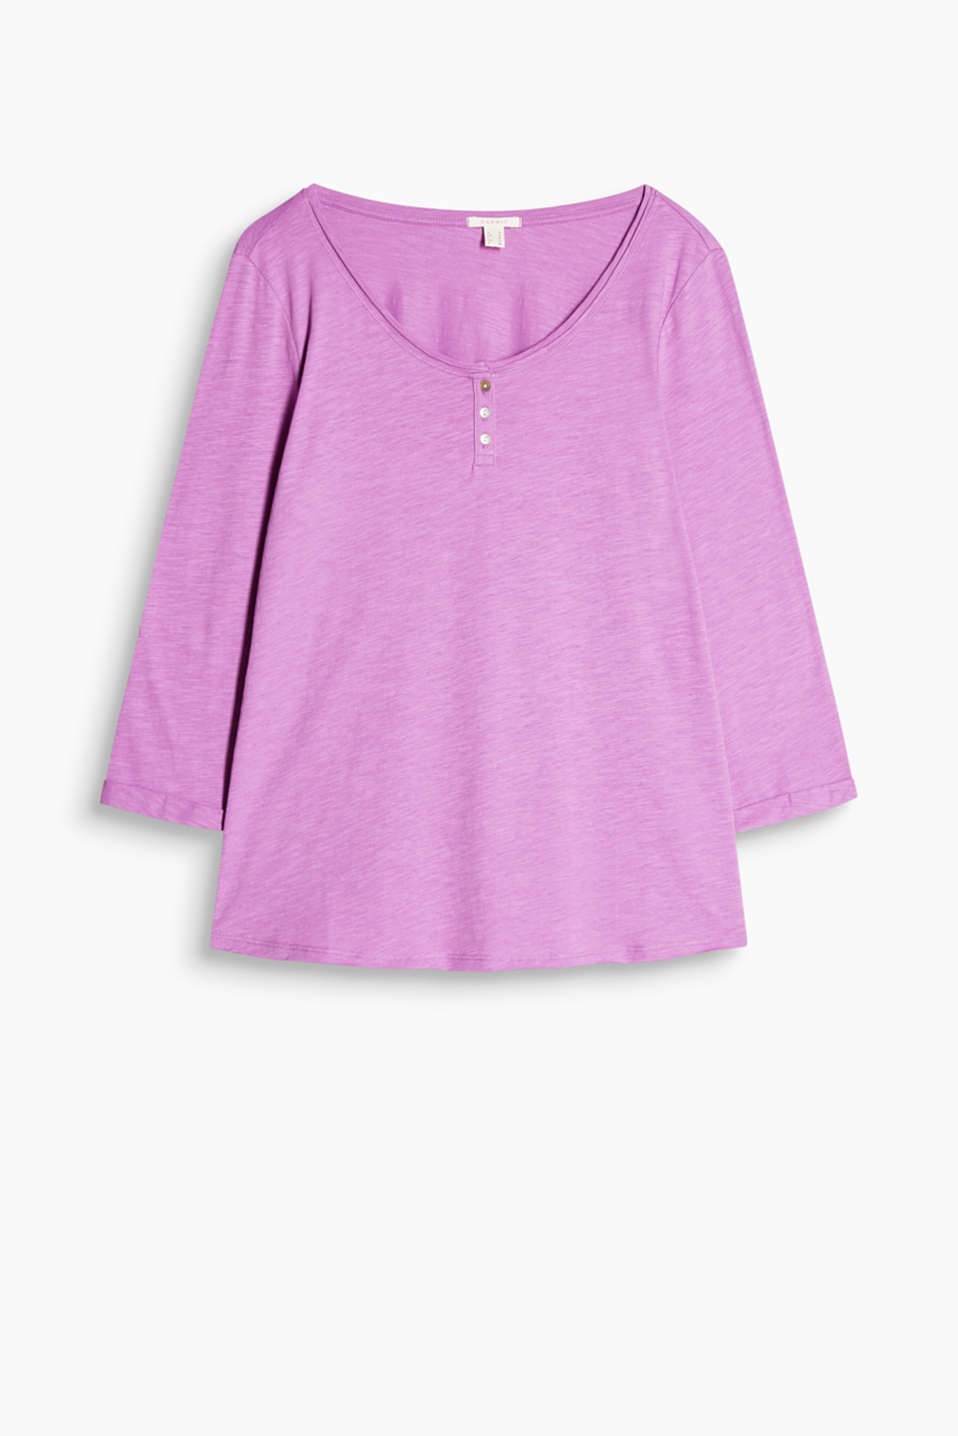 100% cotton T-shirt with a wide round Henley-style neckline and 3/4-length sleeves